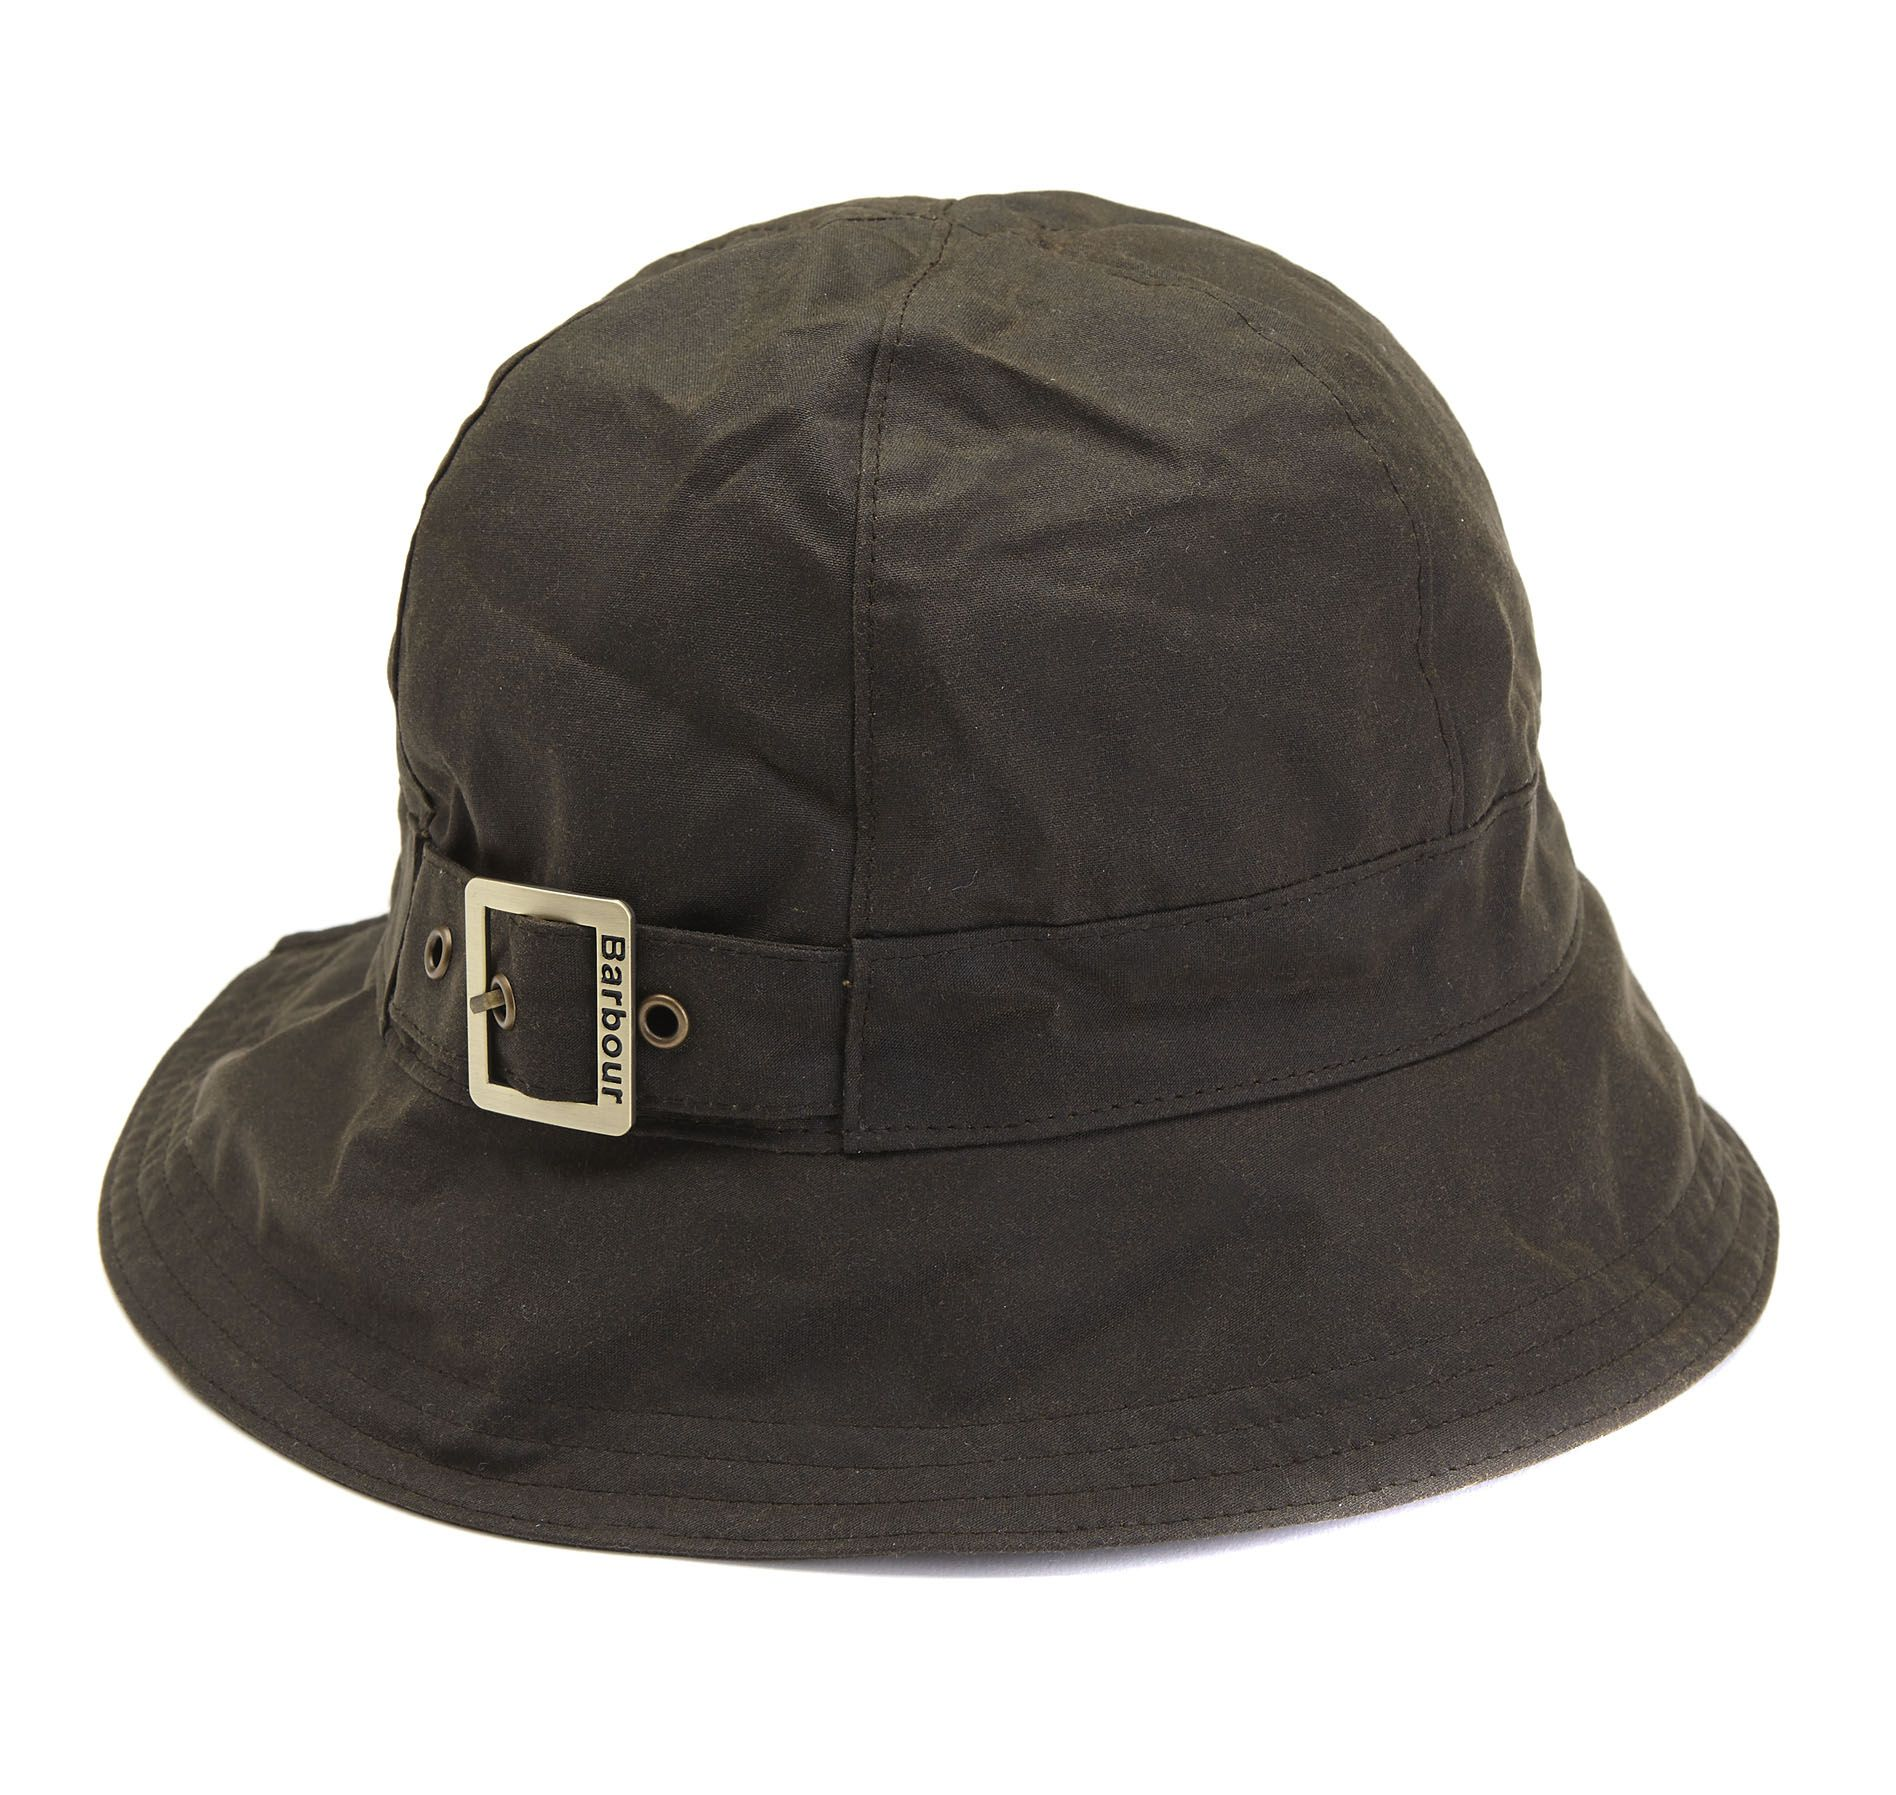 Wax new trench hat